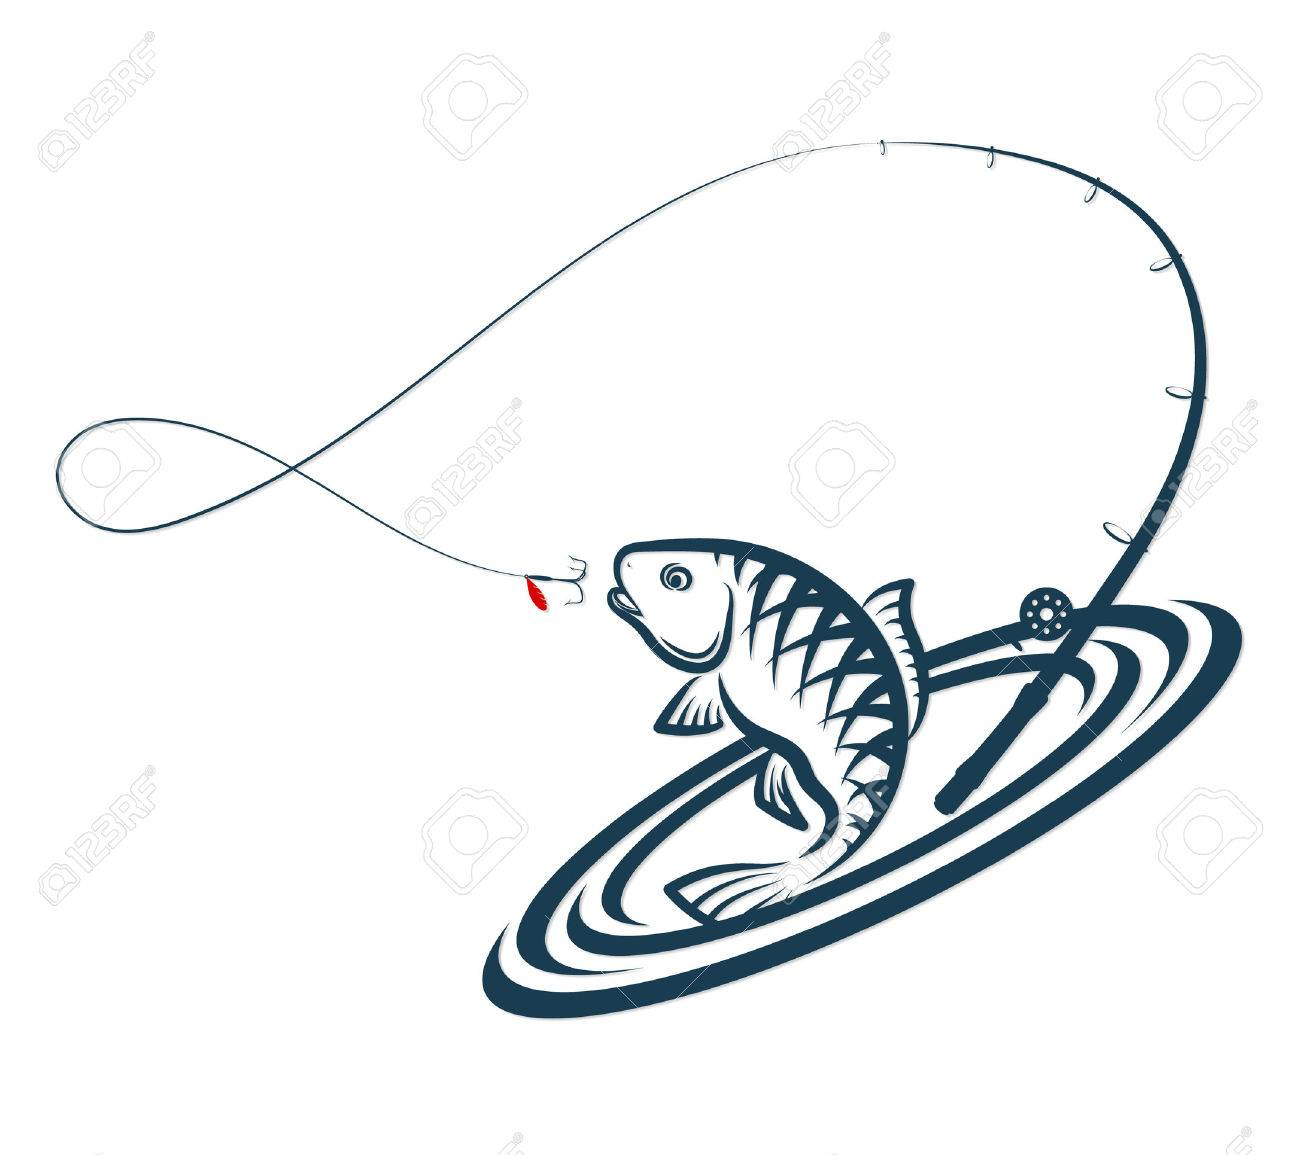 1300x1155 Fish And Fishing Rod Jumping Silhouette Royalty Free Cliparts